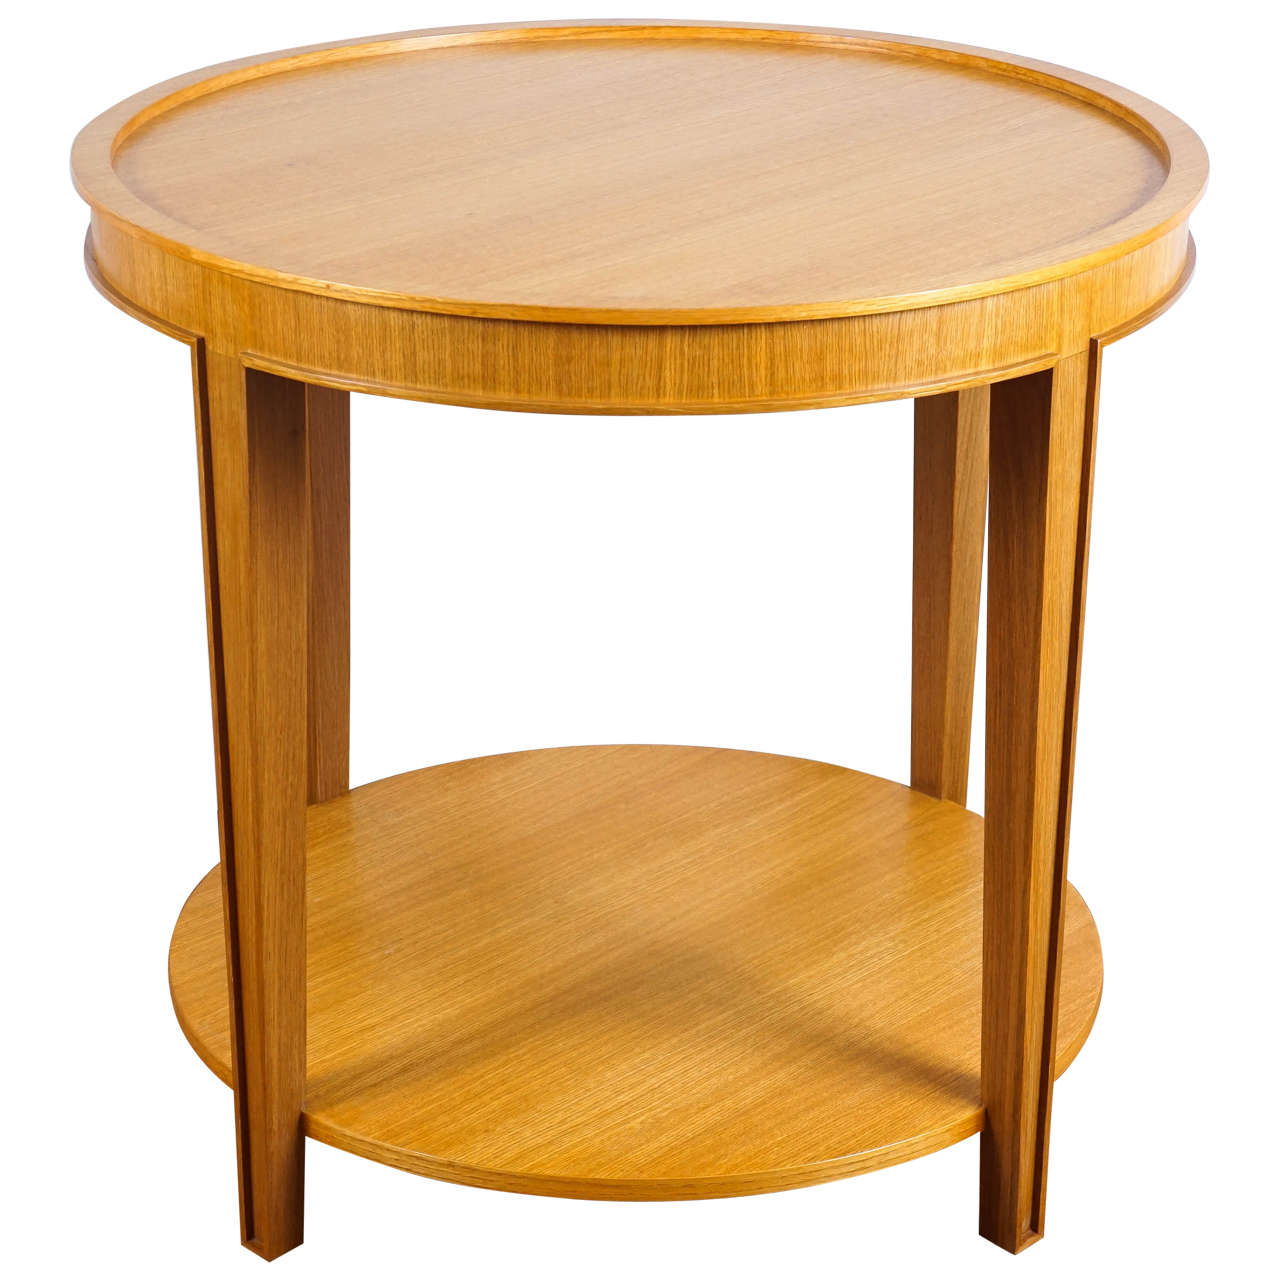 Custom Round Oak Table For Sale At 1stdibs